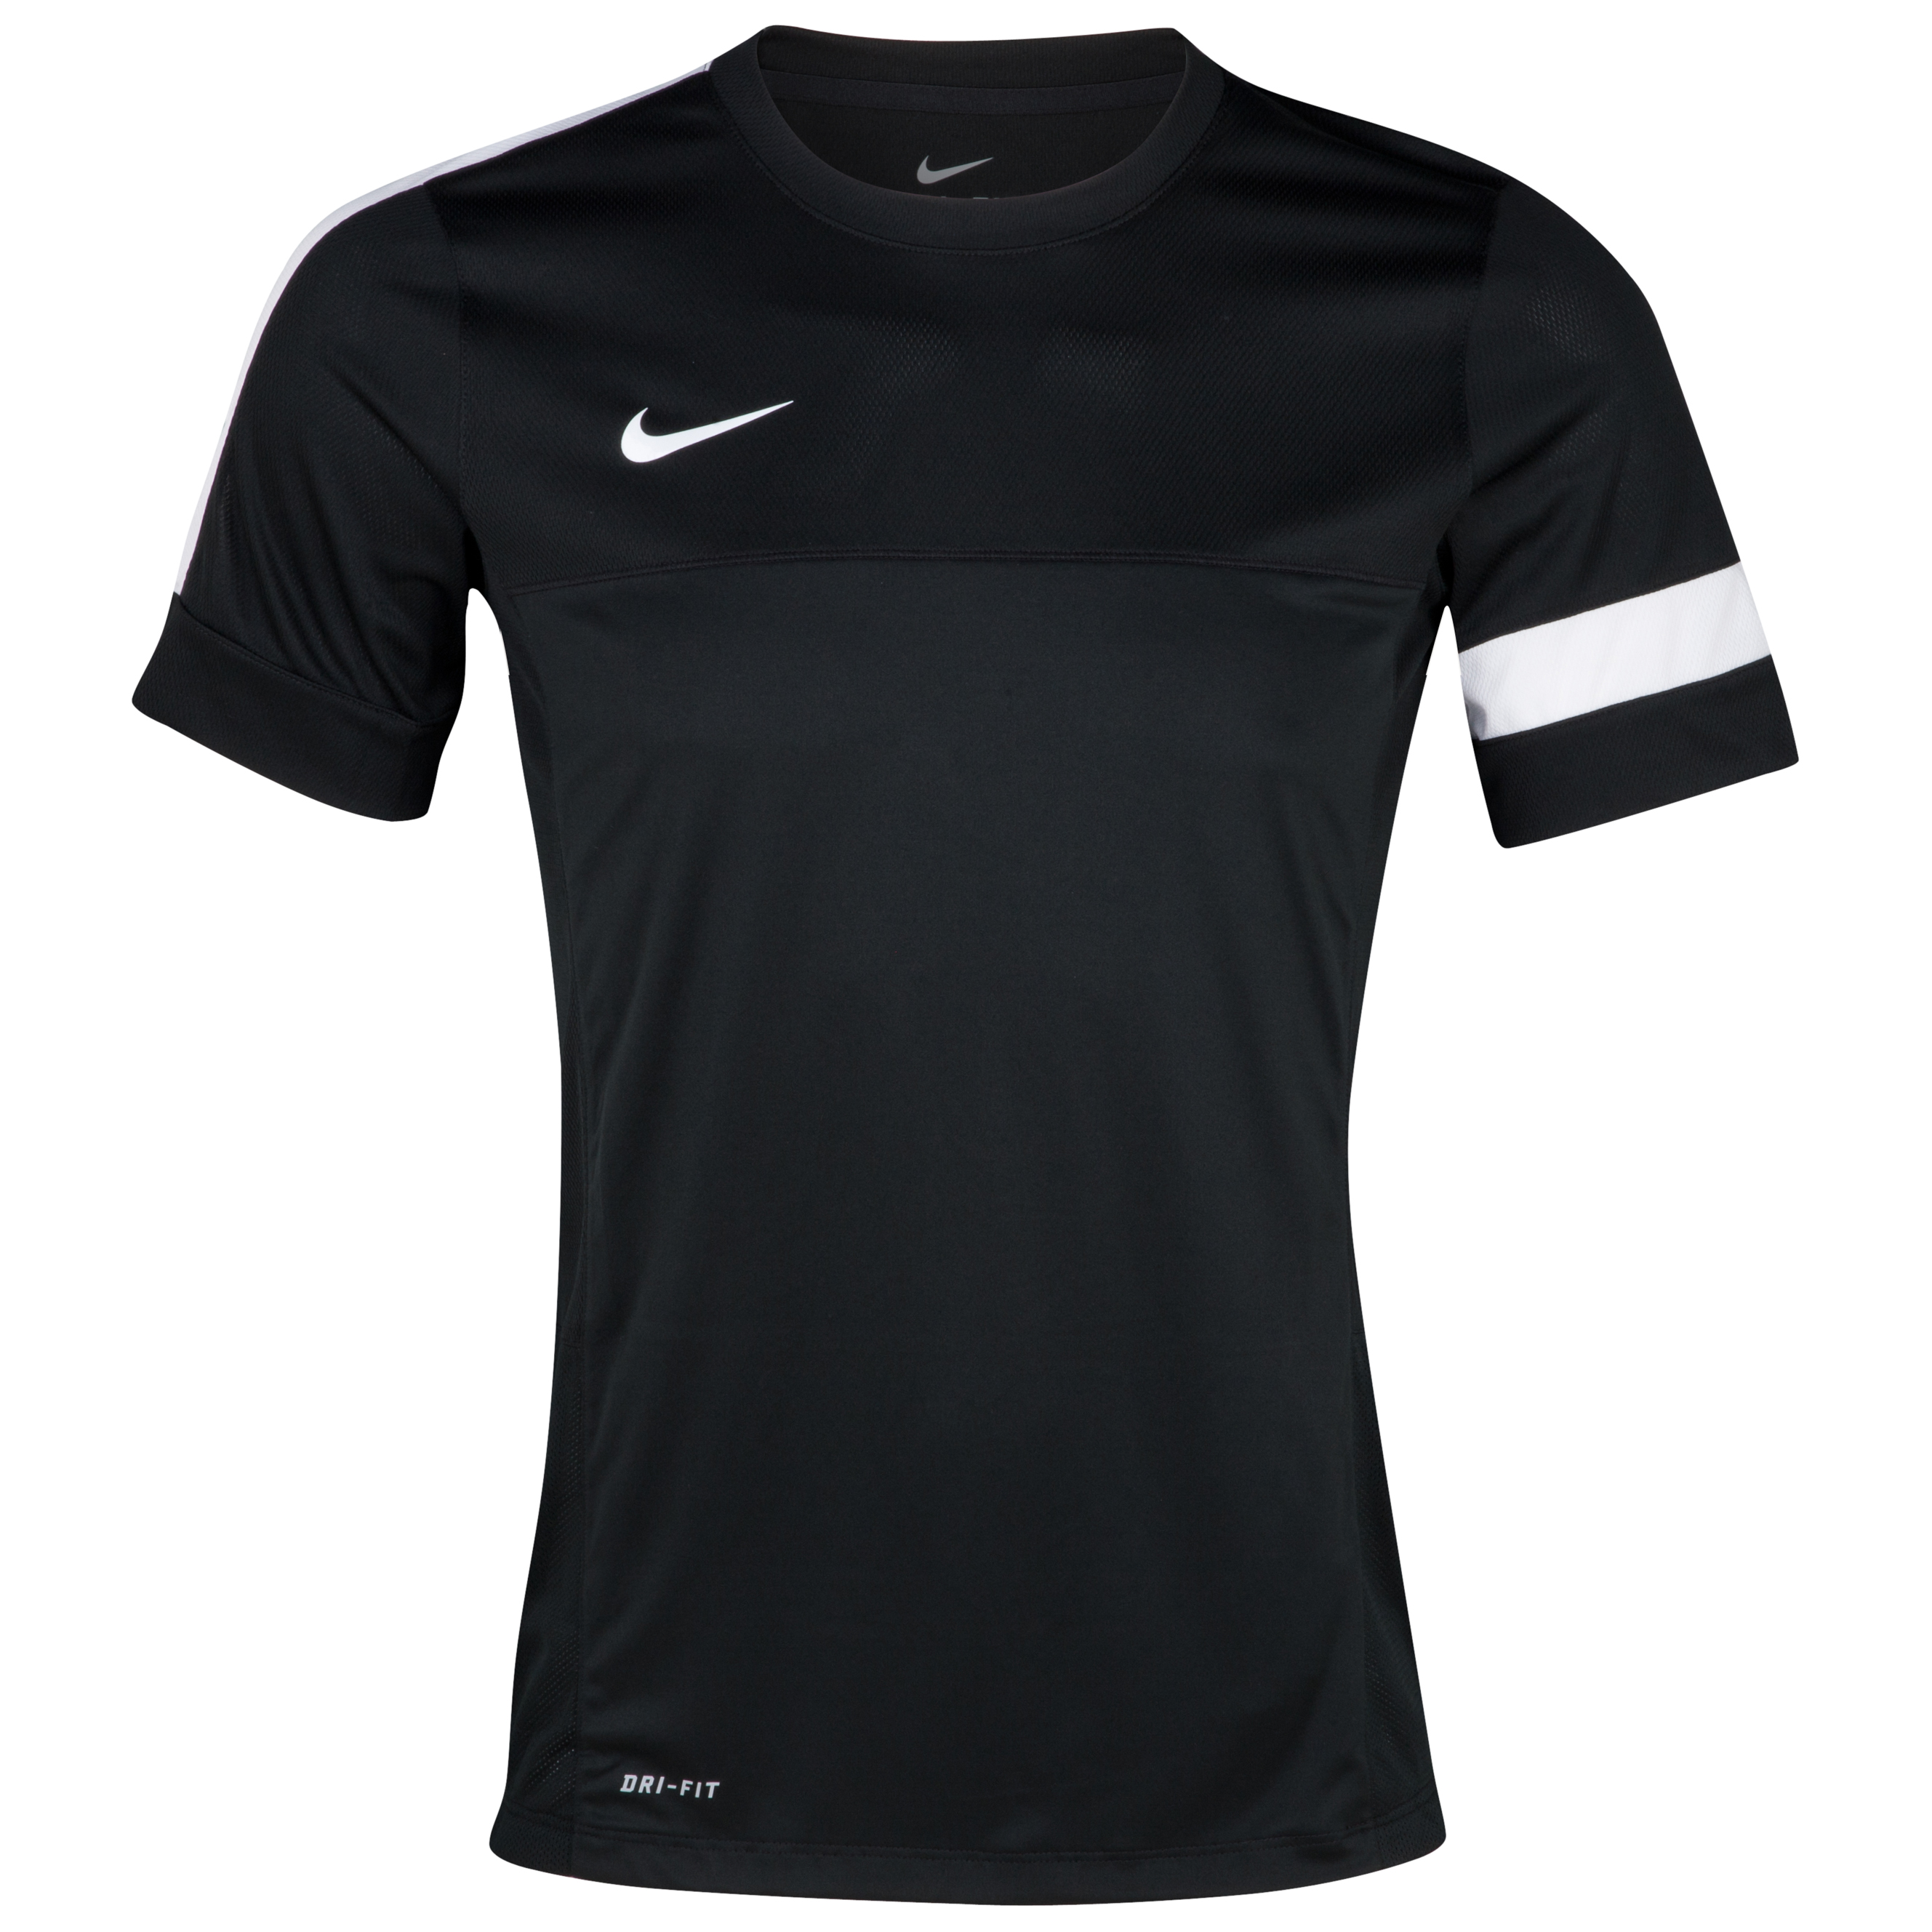 Nike Training Top - Black/White - Kids